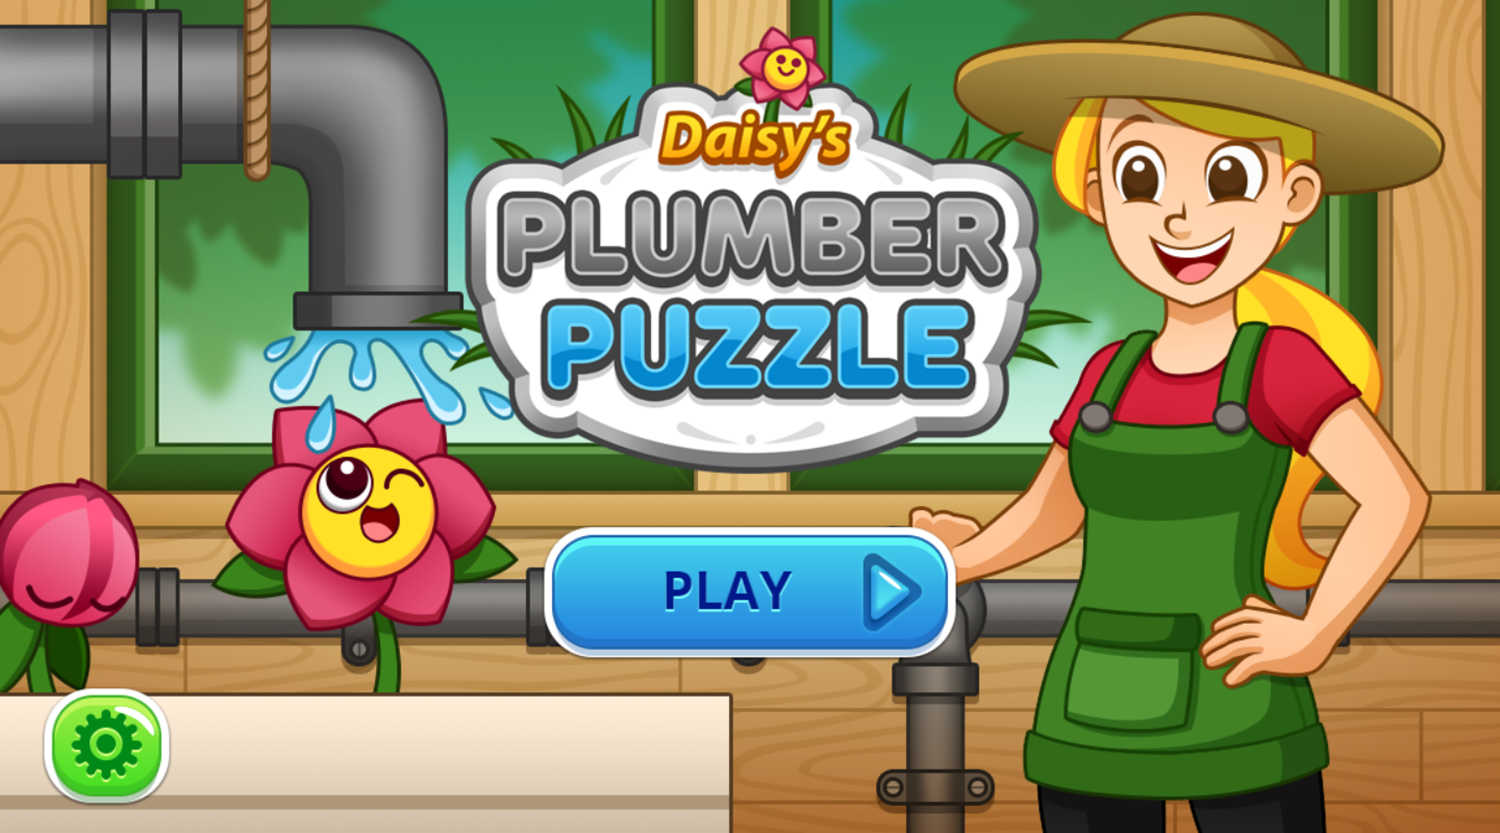 Daisy's Plumber Puzzle Game Welcome Screen Screenshot.